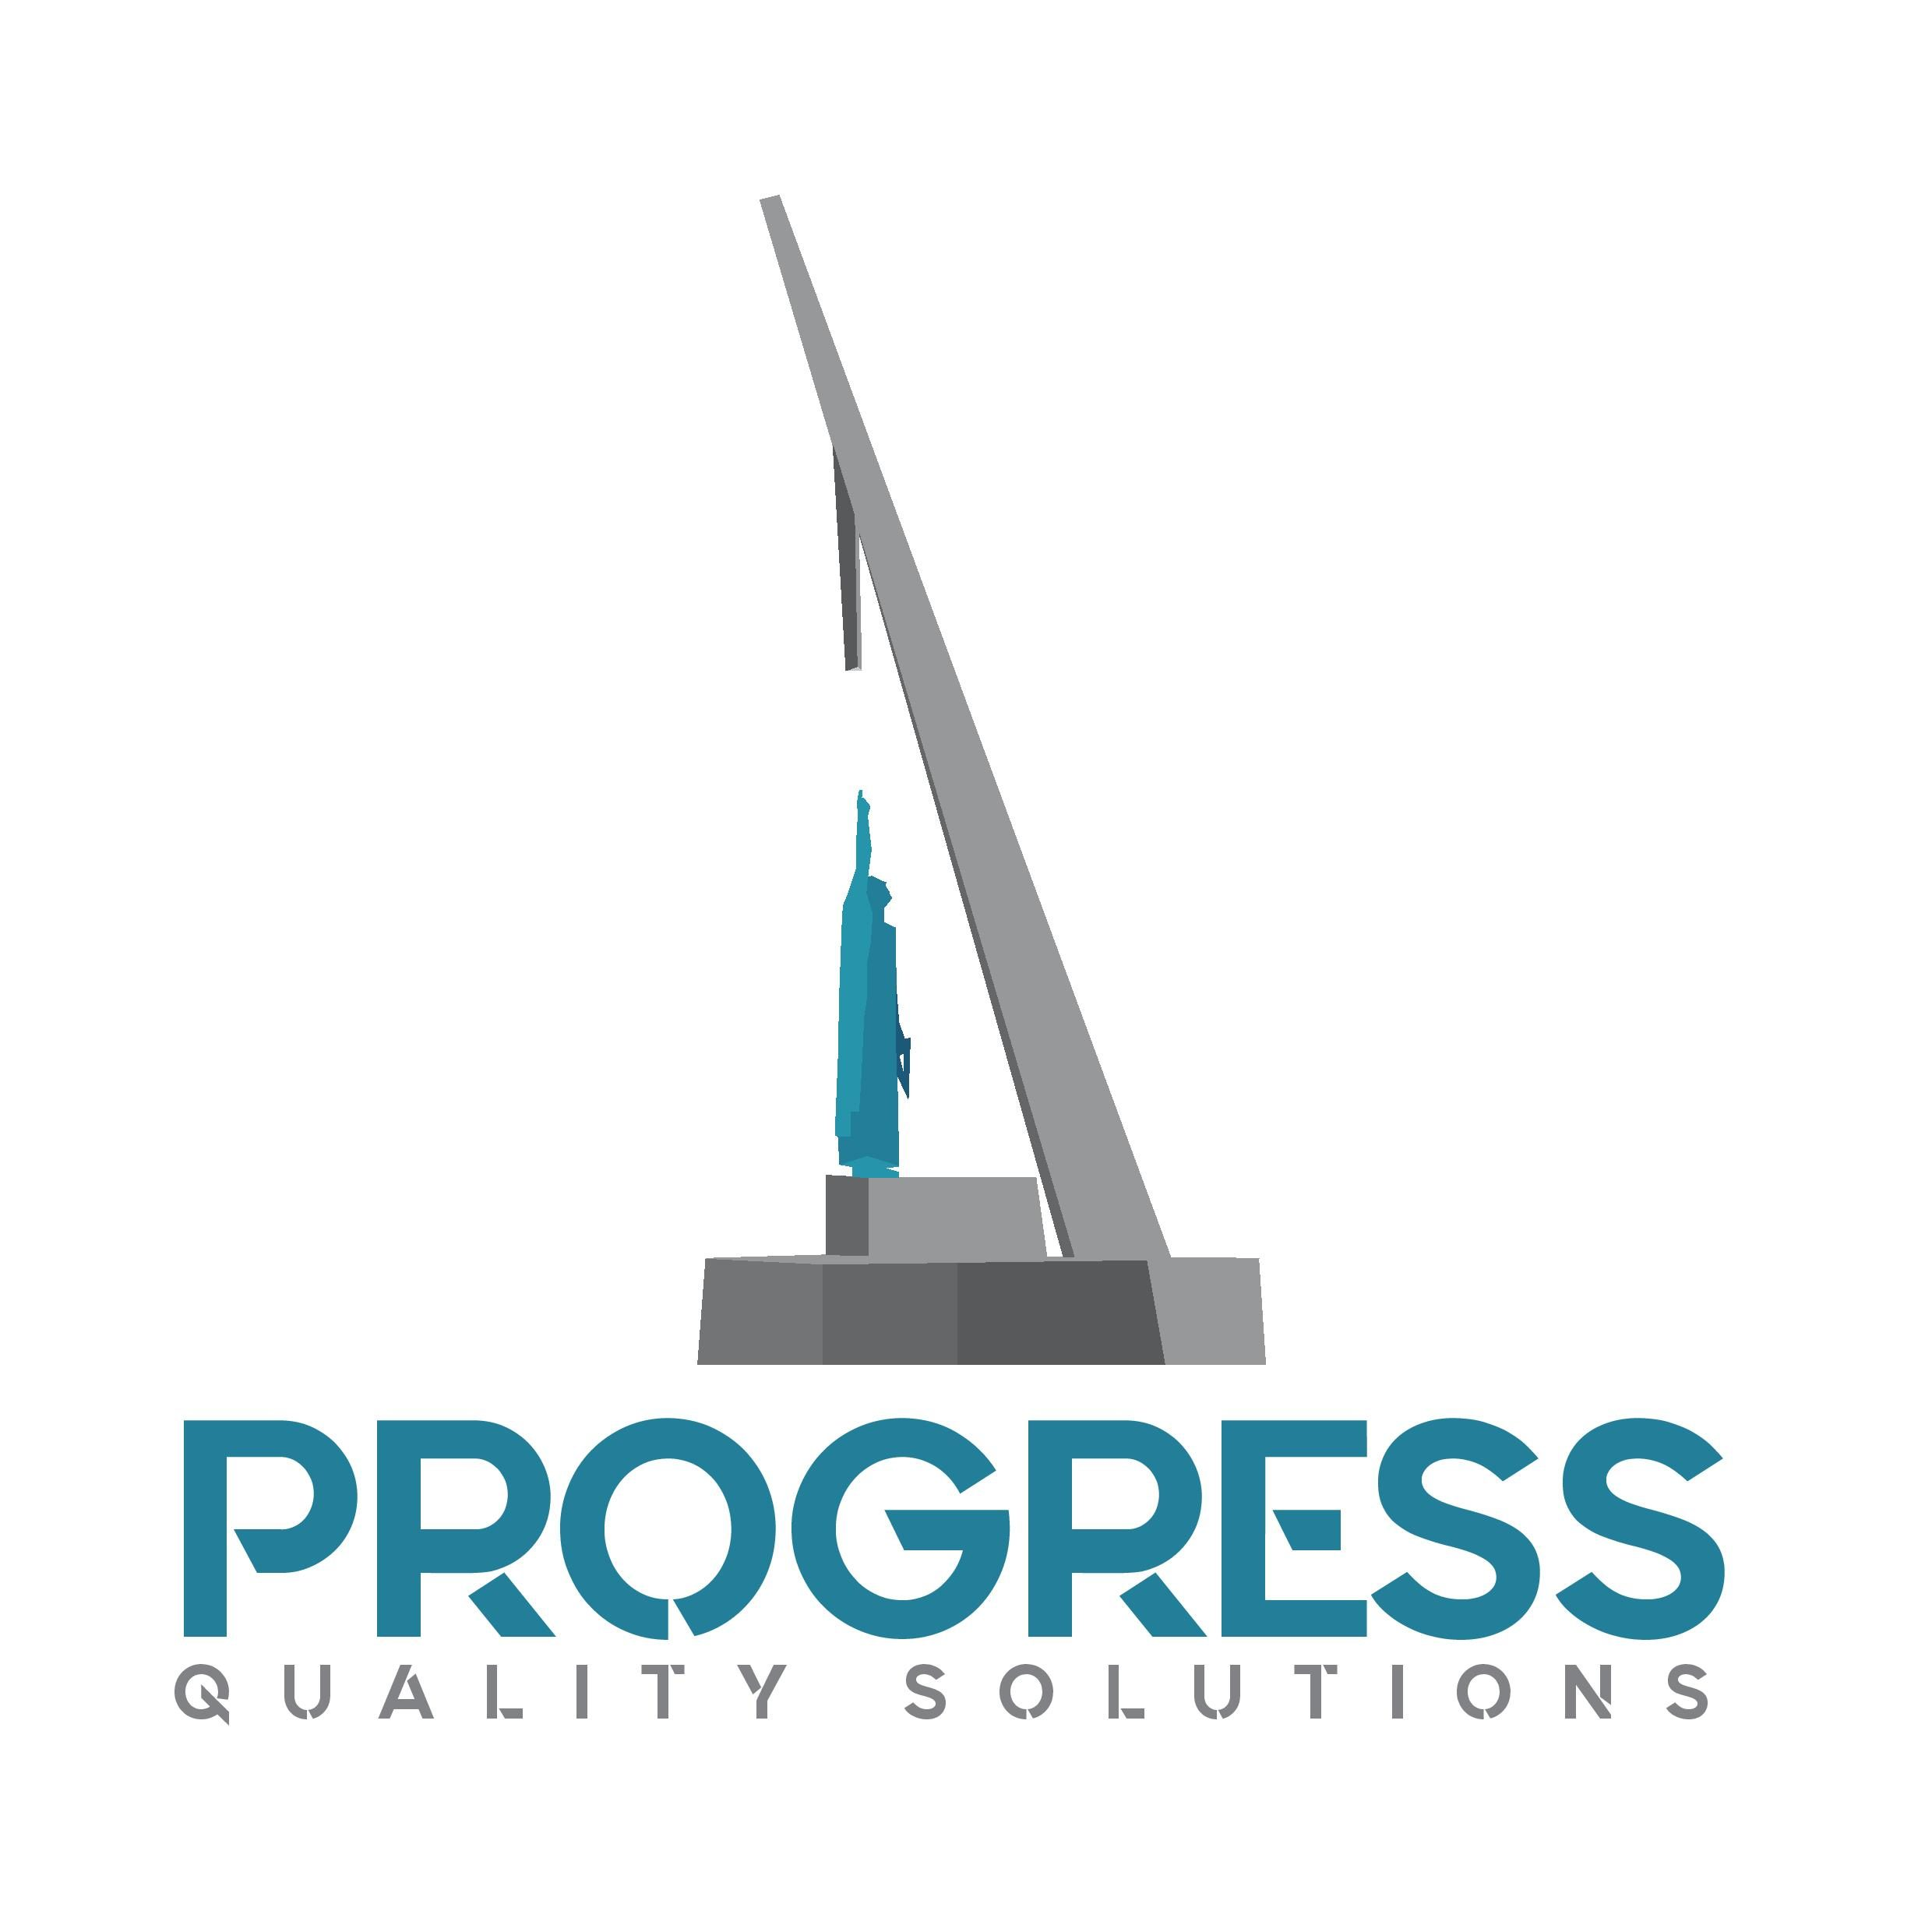 Progress Quality Solutions